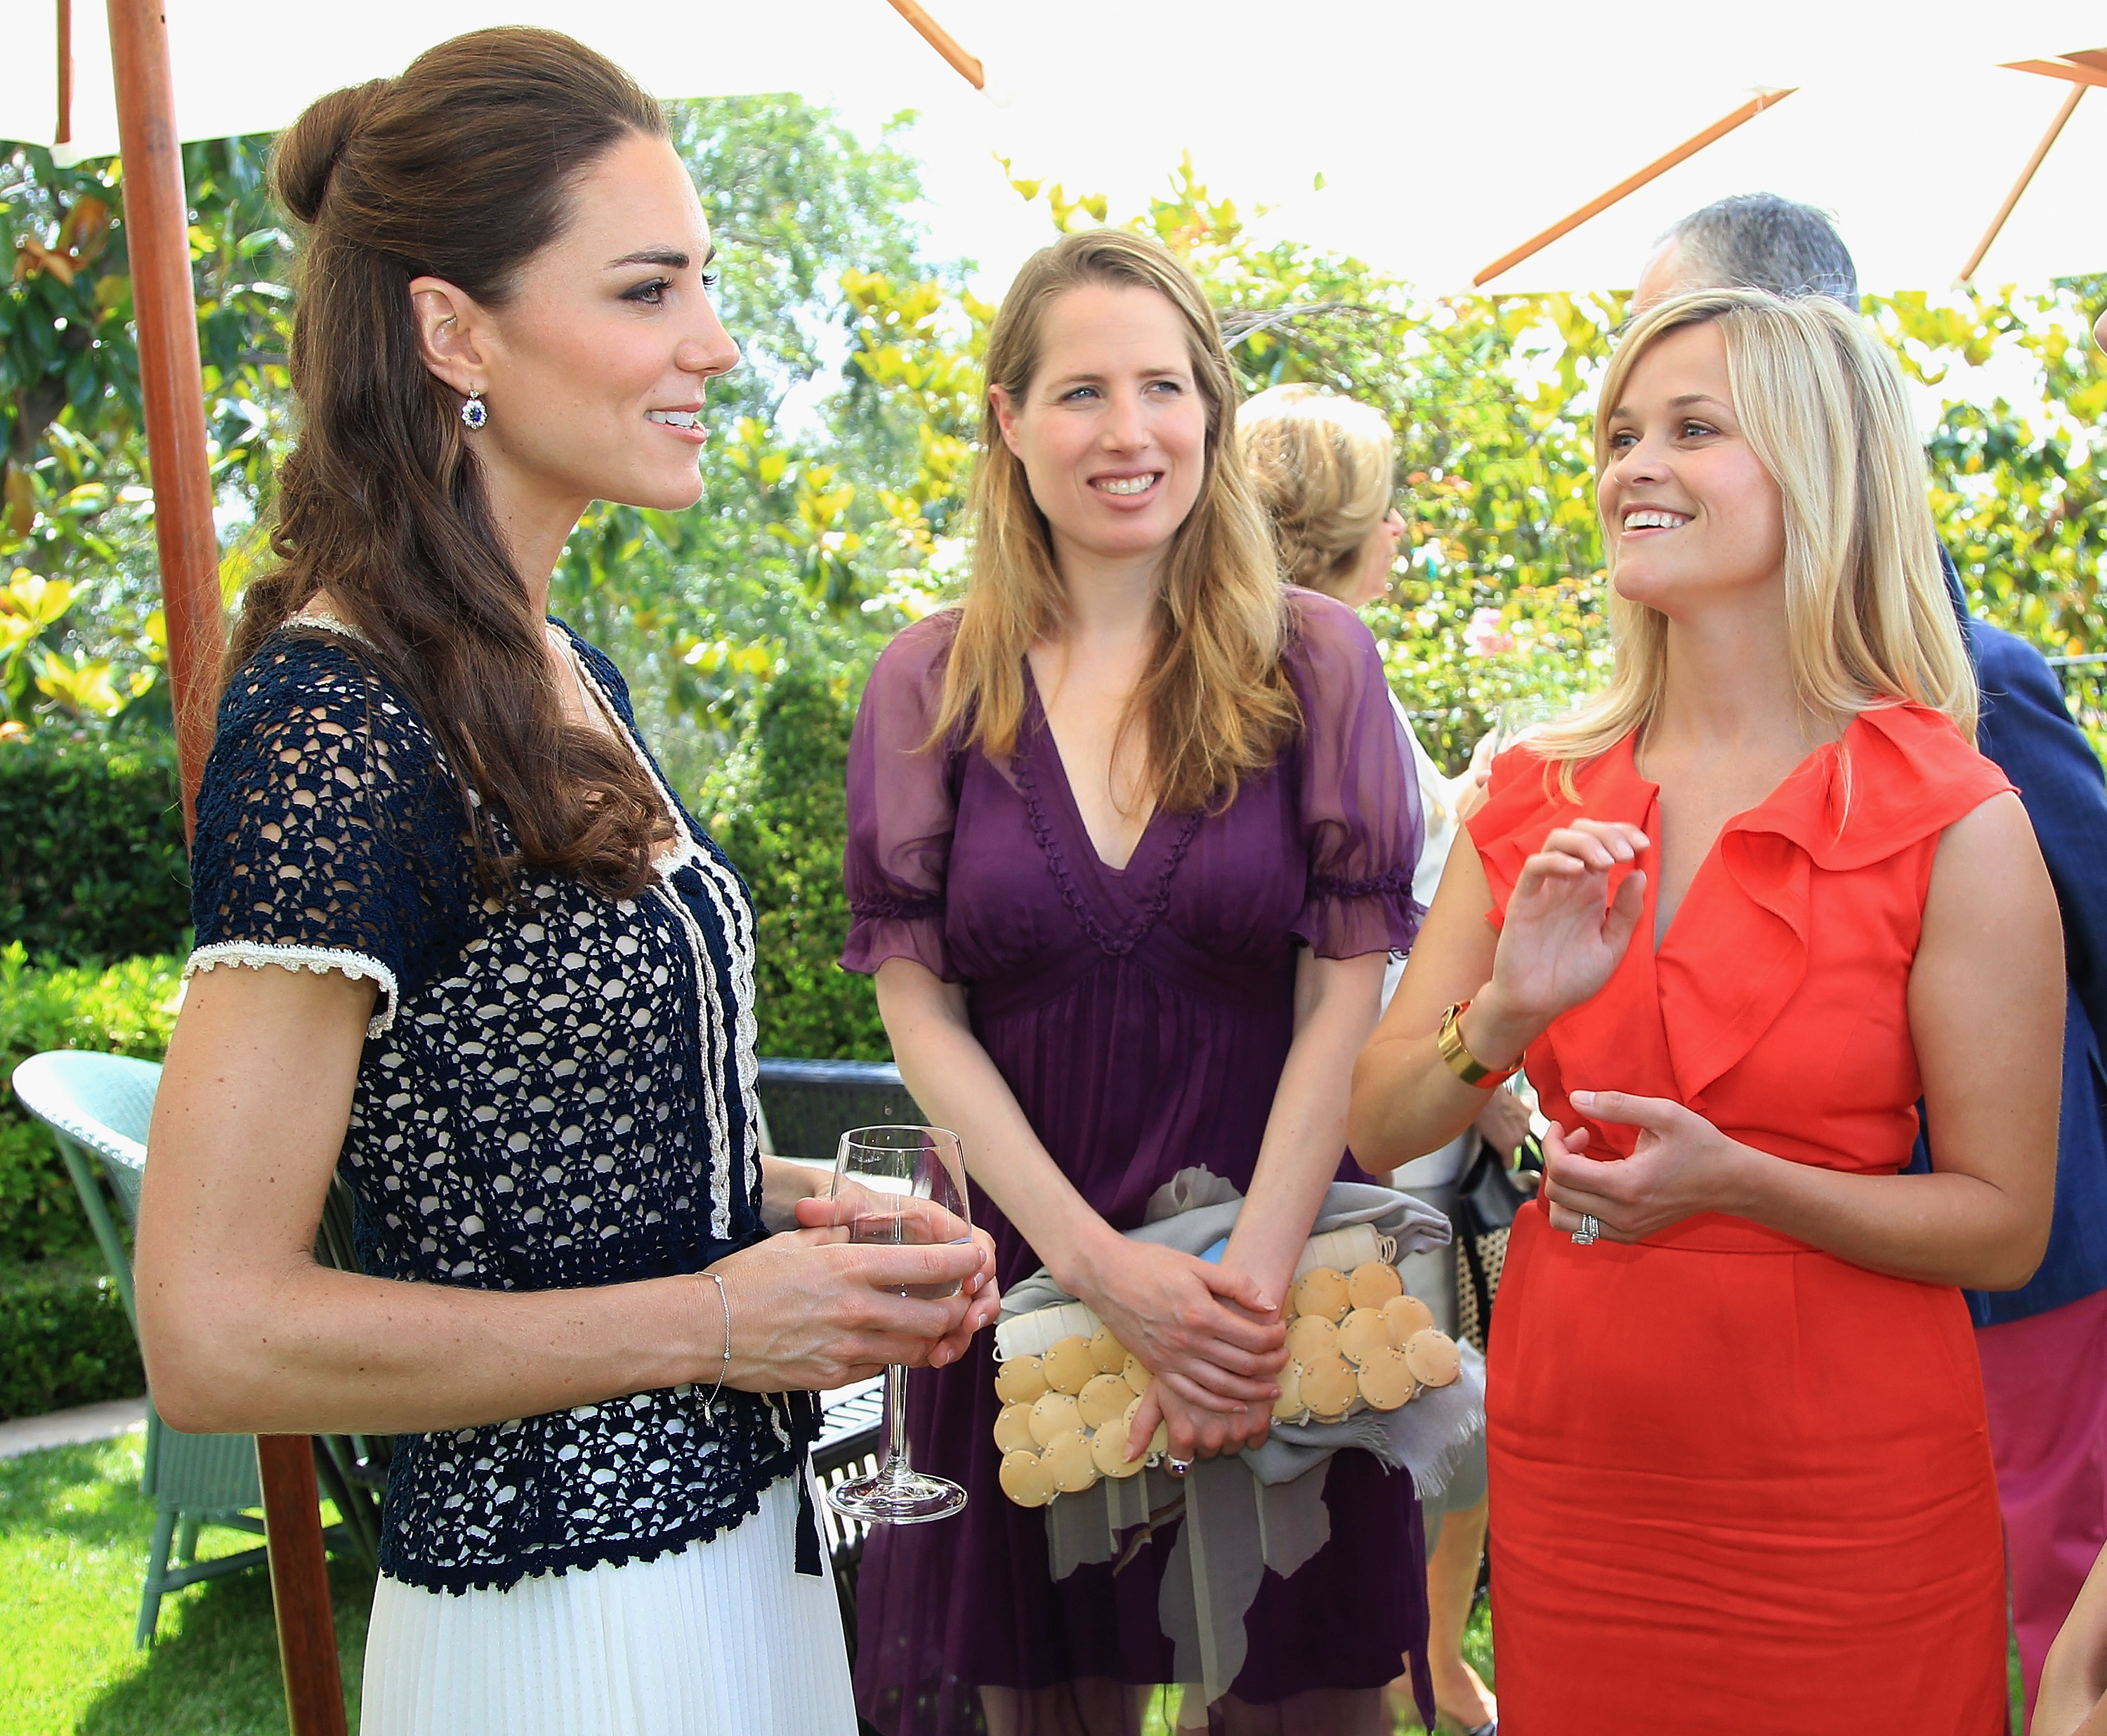 Kate Middleton and Reese Witherspoon (Source: Getty Images)